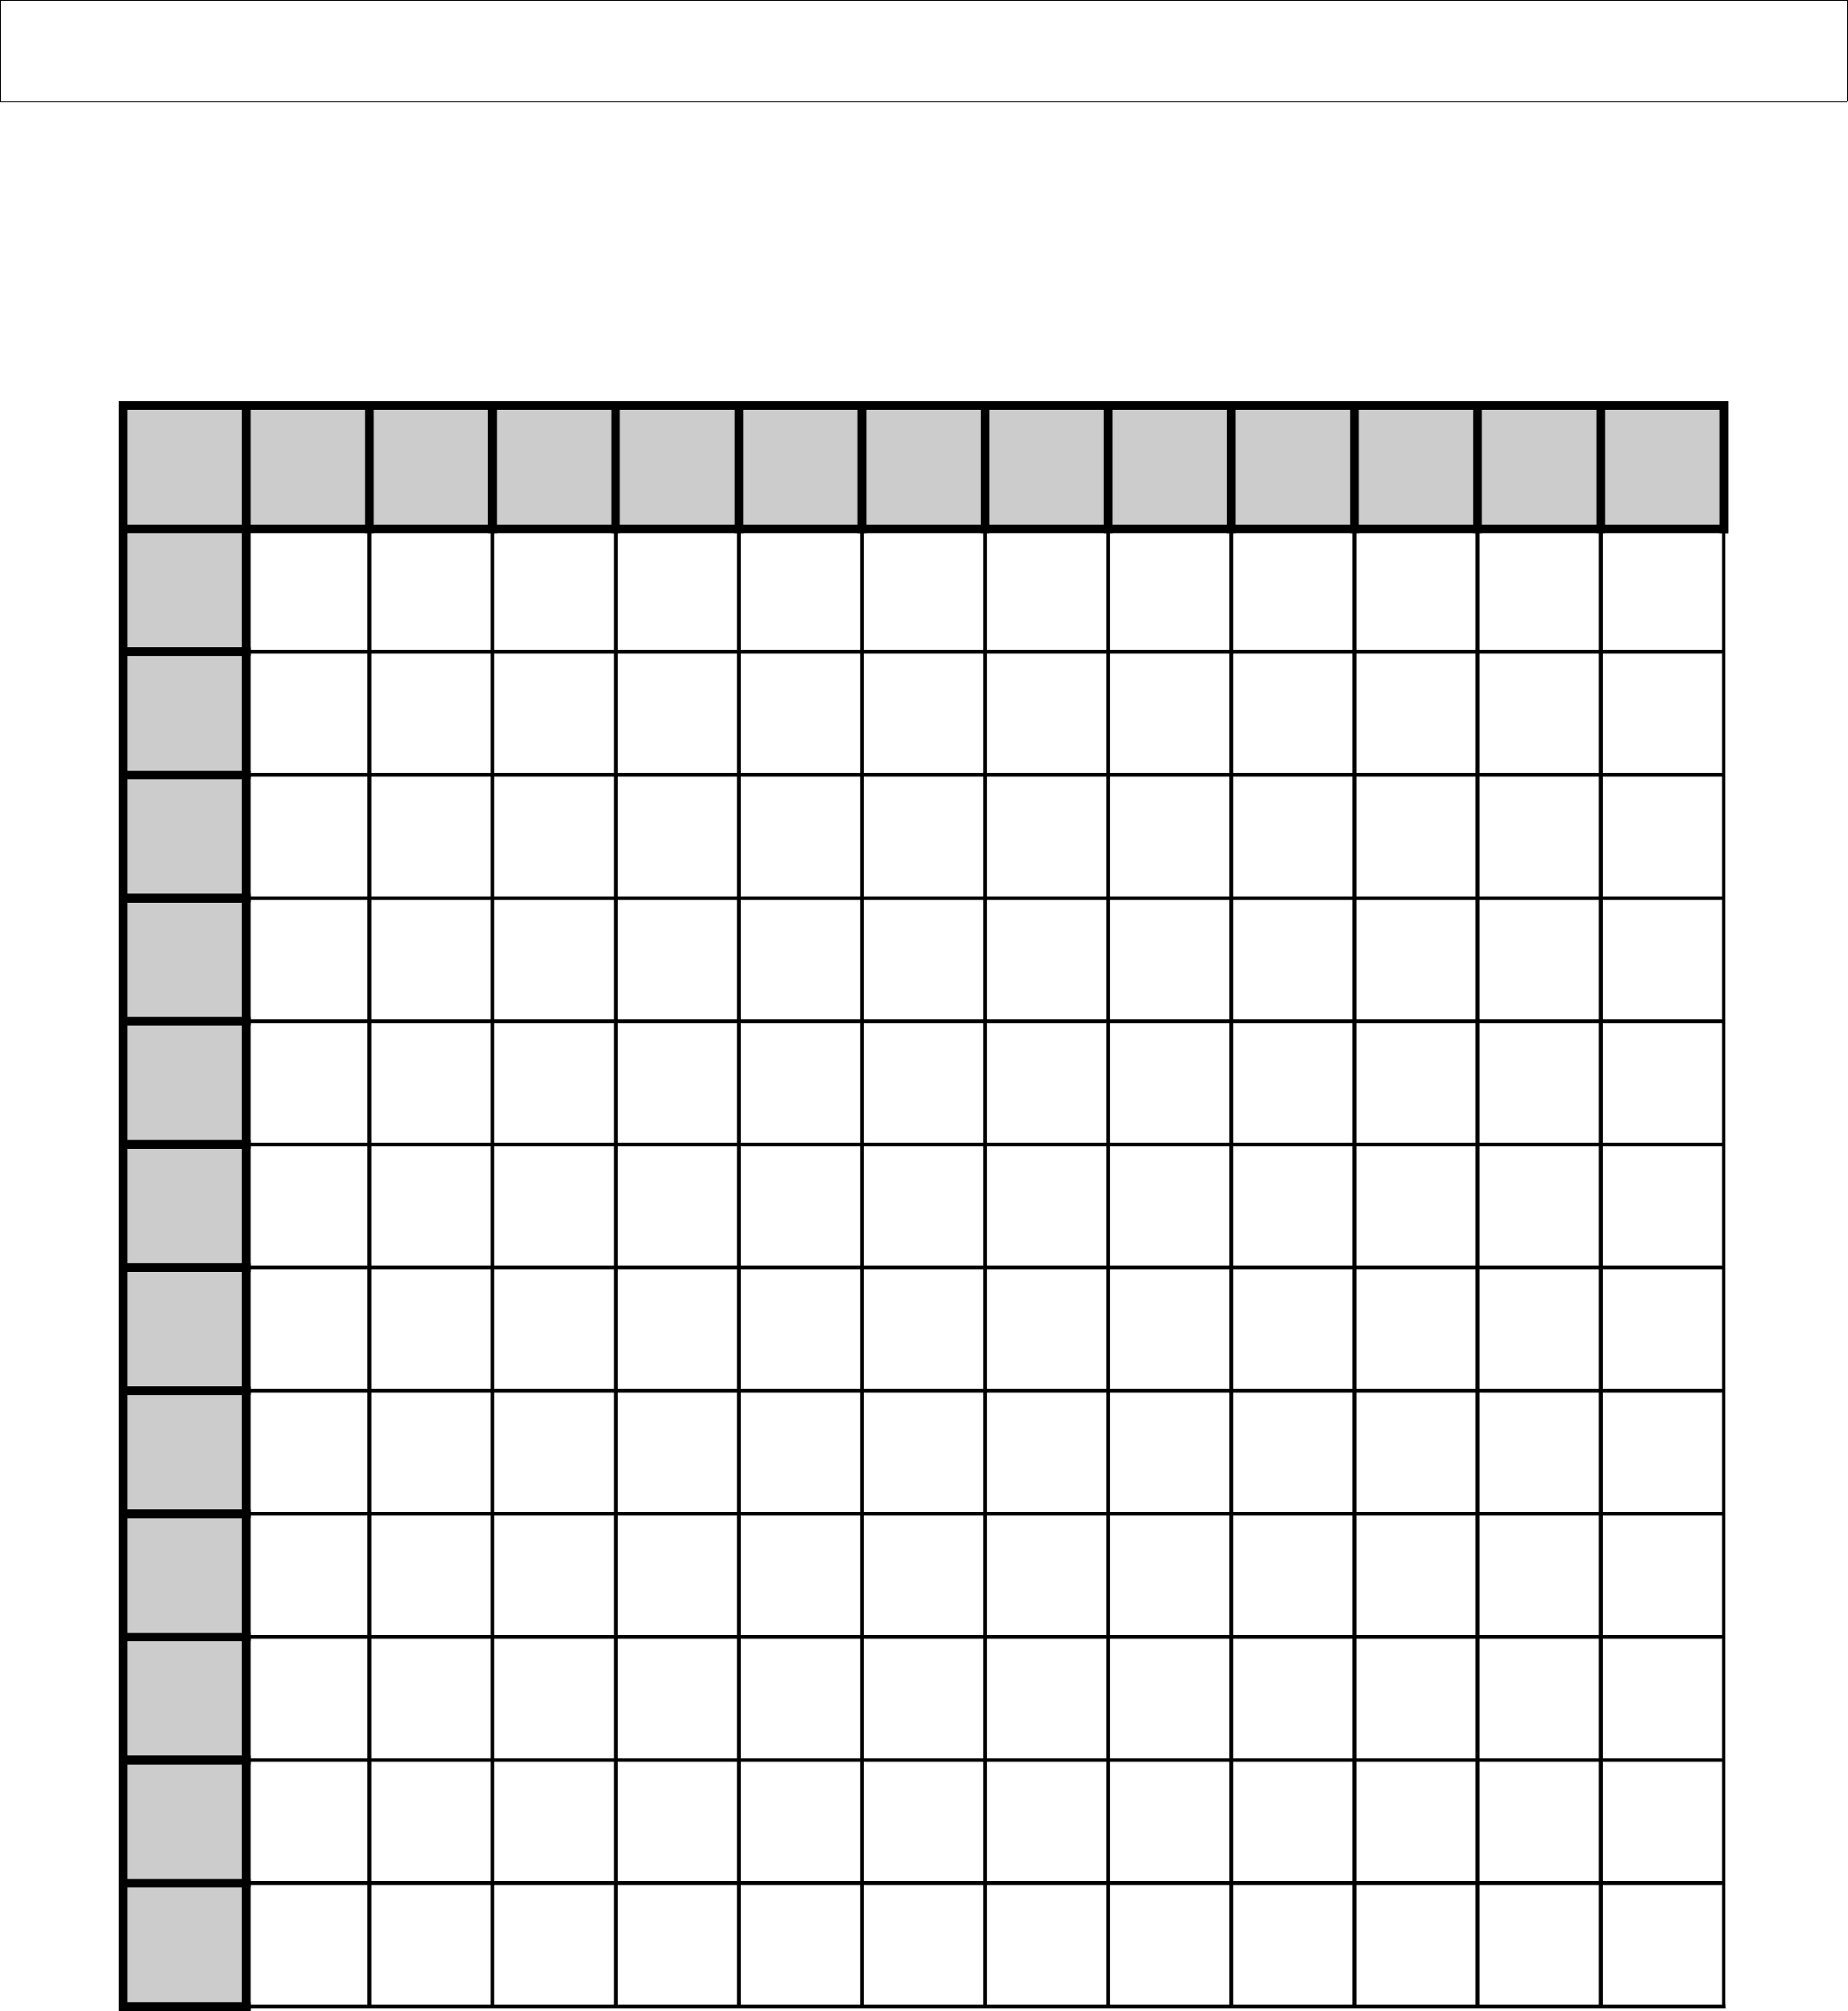 Blank Multiplication Table Worksheet 1 10